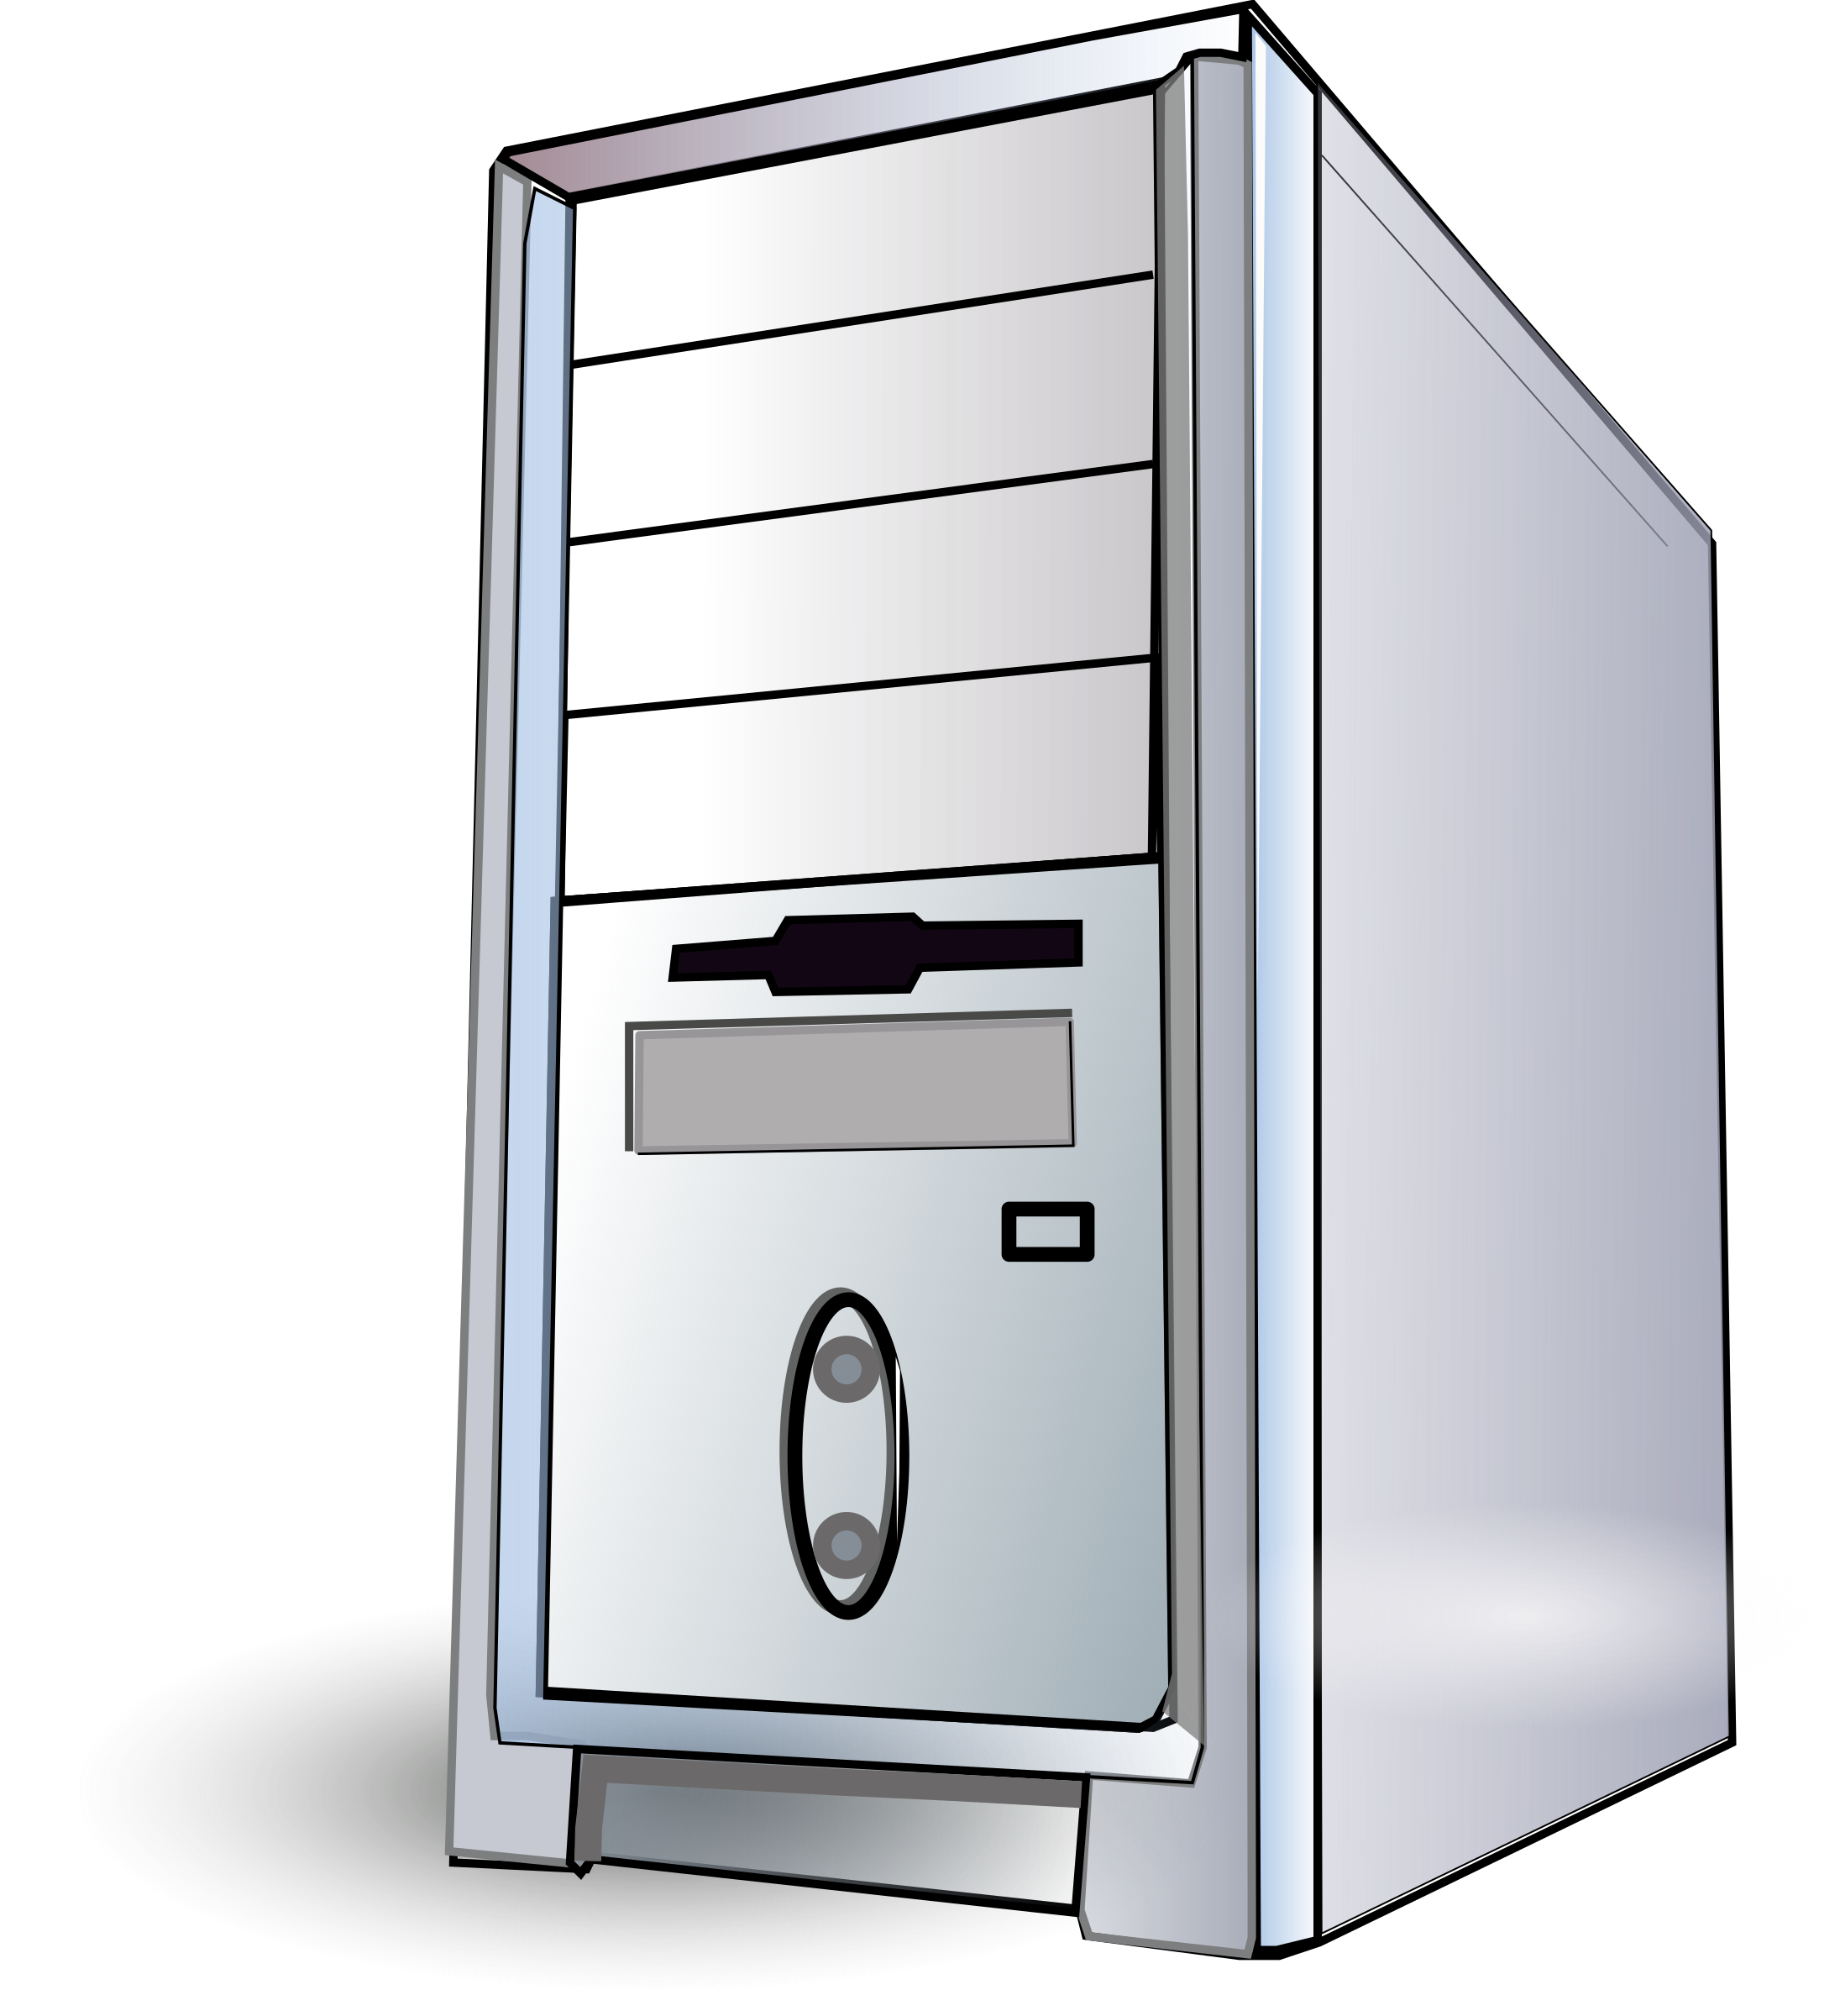 Computers drawing computer tower. Pc box icons png